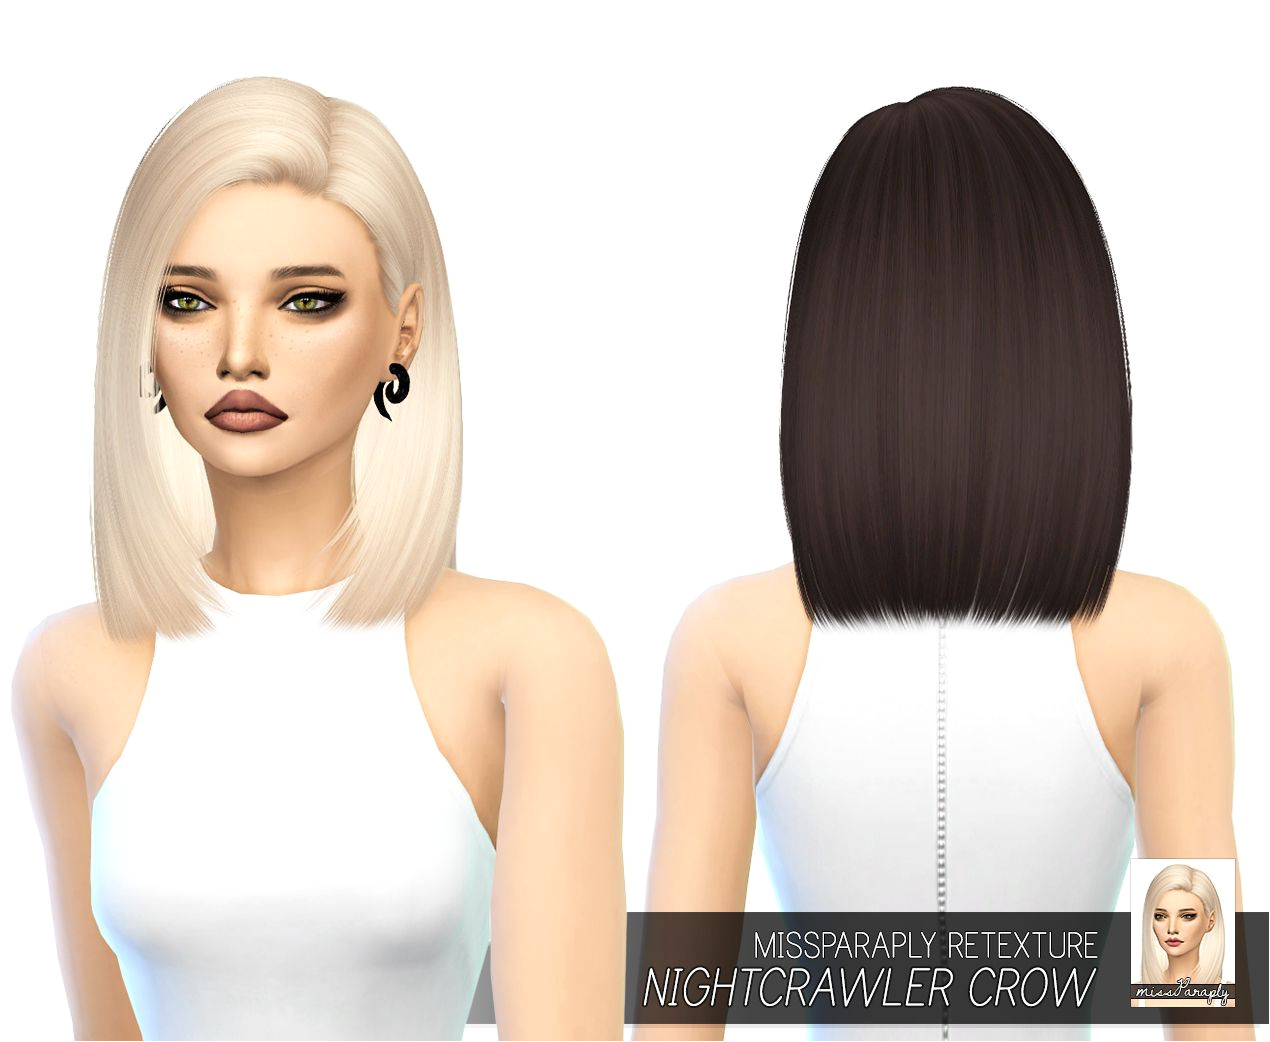 Sims 4 CC missparaply [TS4] Nightcrawler Crow Solids 64